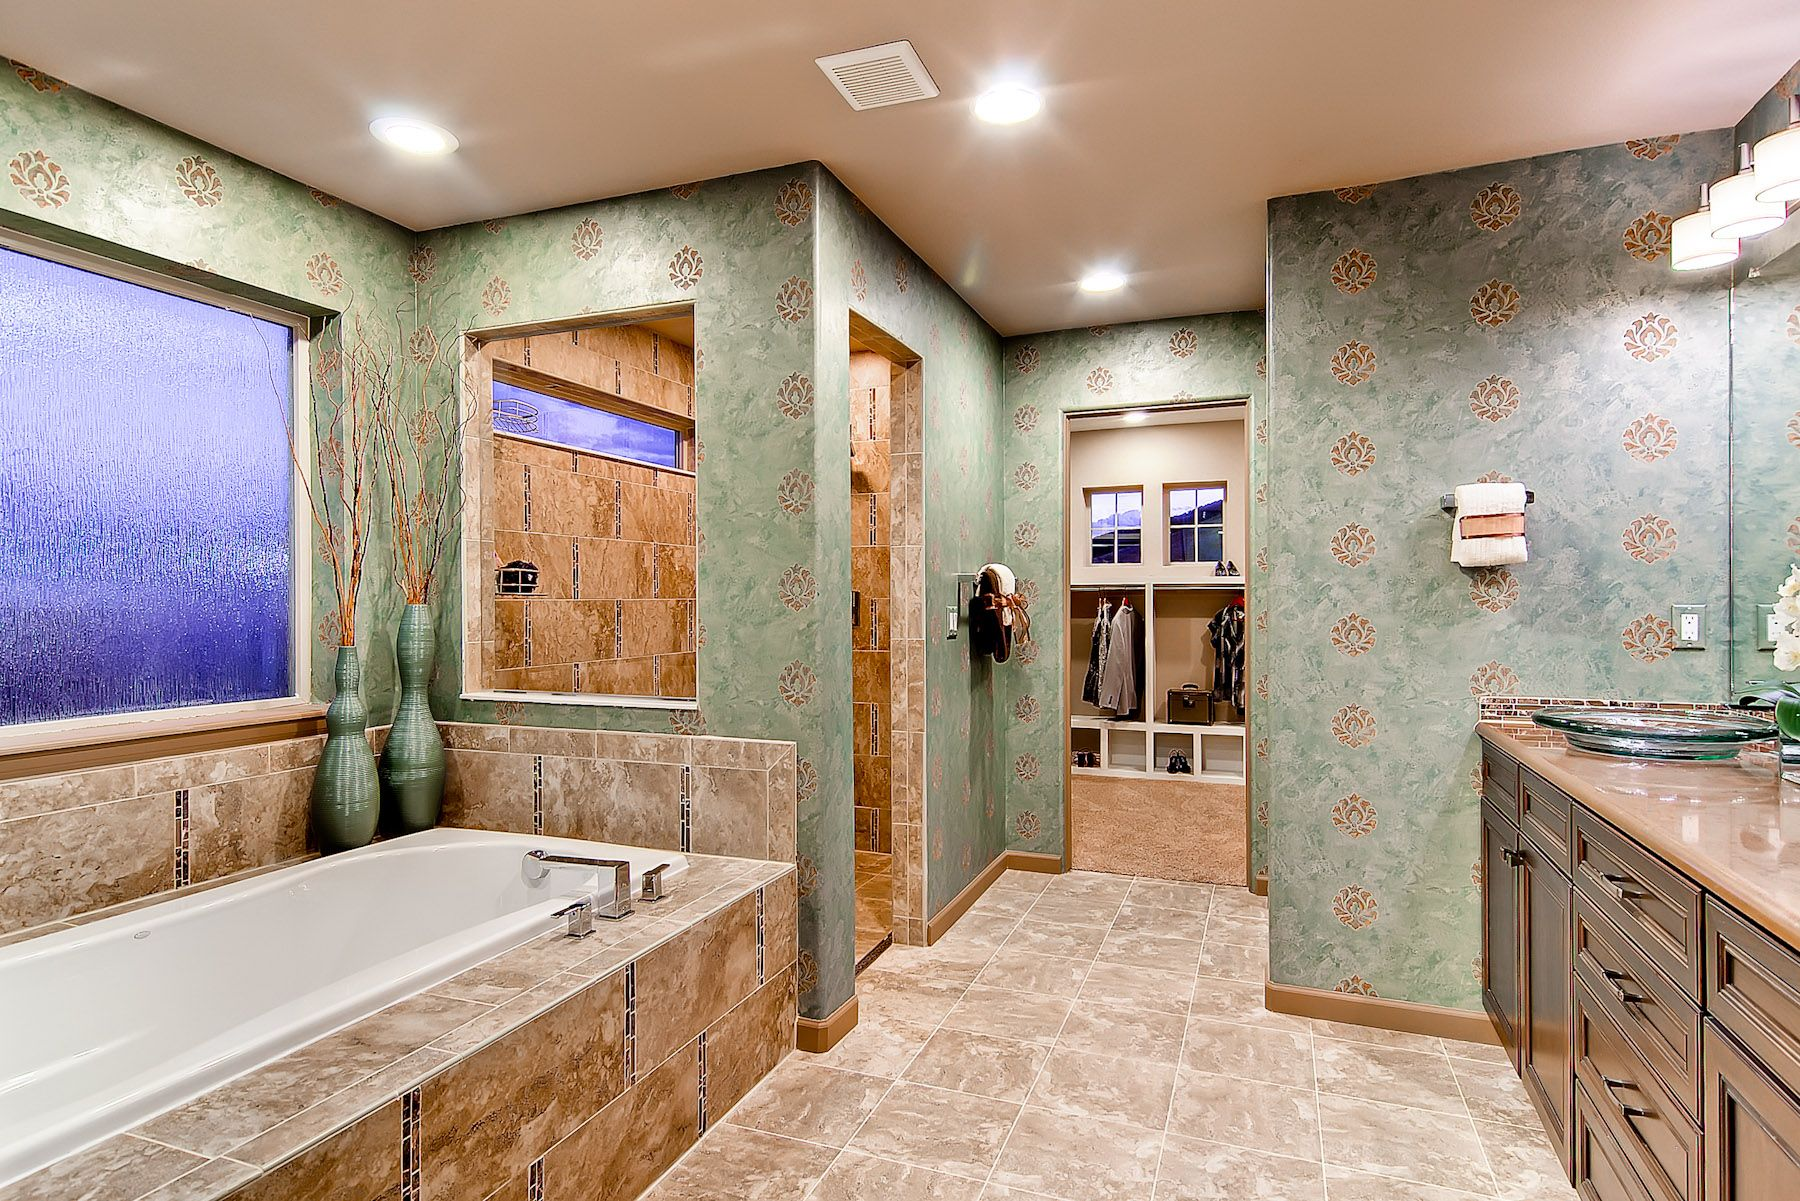 The Boulderado Master Bathroom